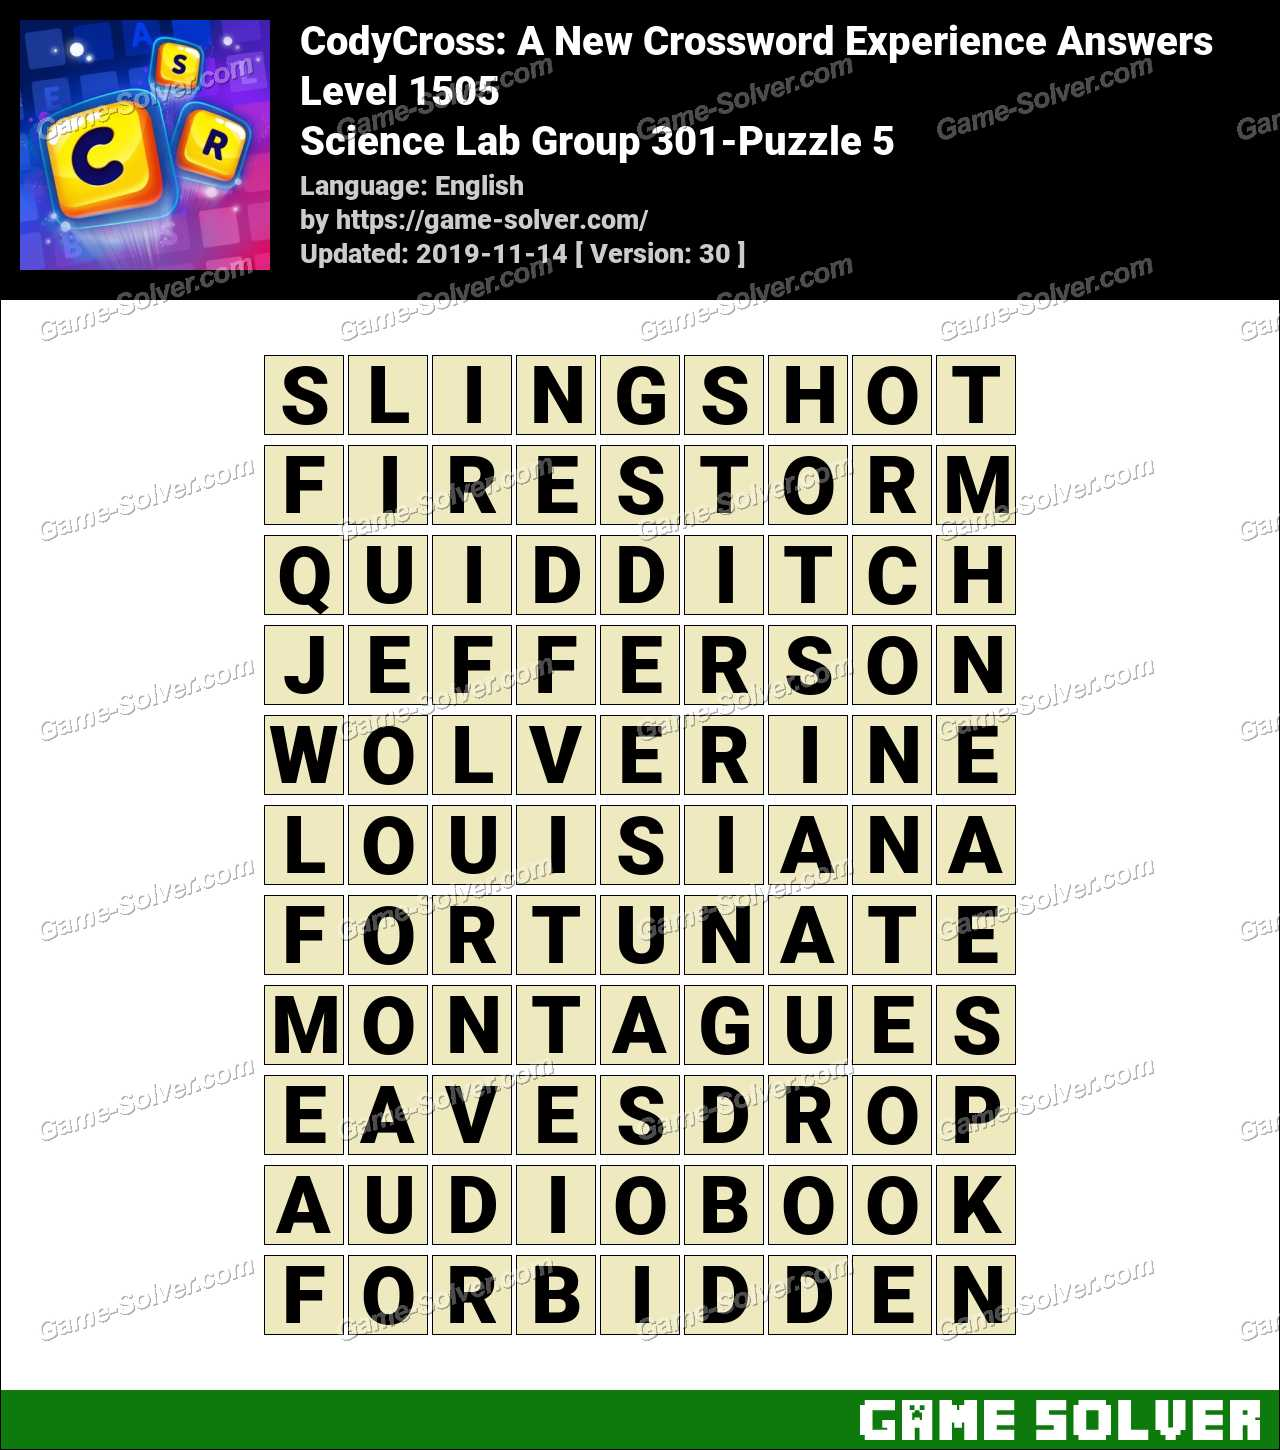 CodyCross Science Lab Group 301-Puzzle 5 Answers